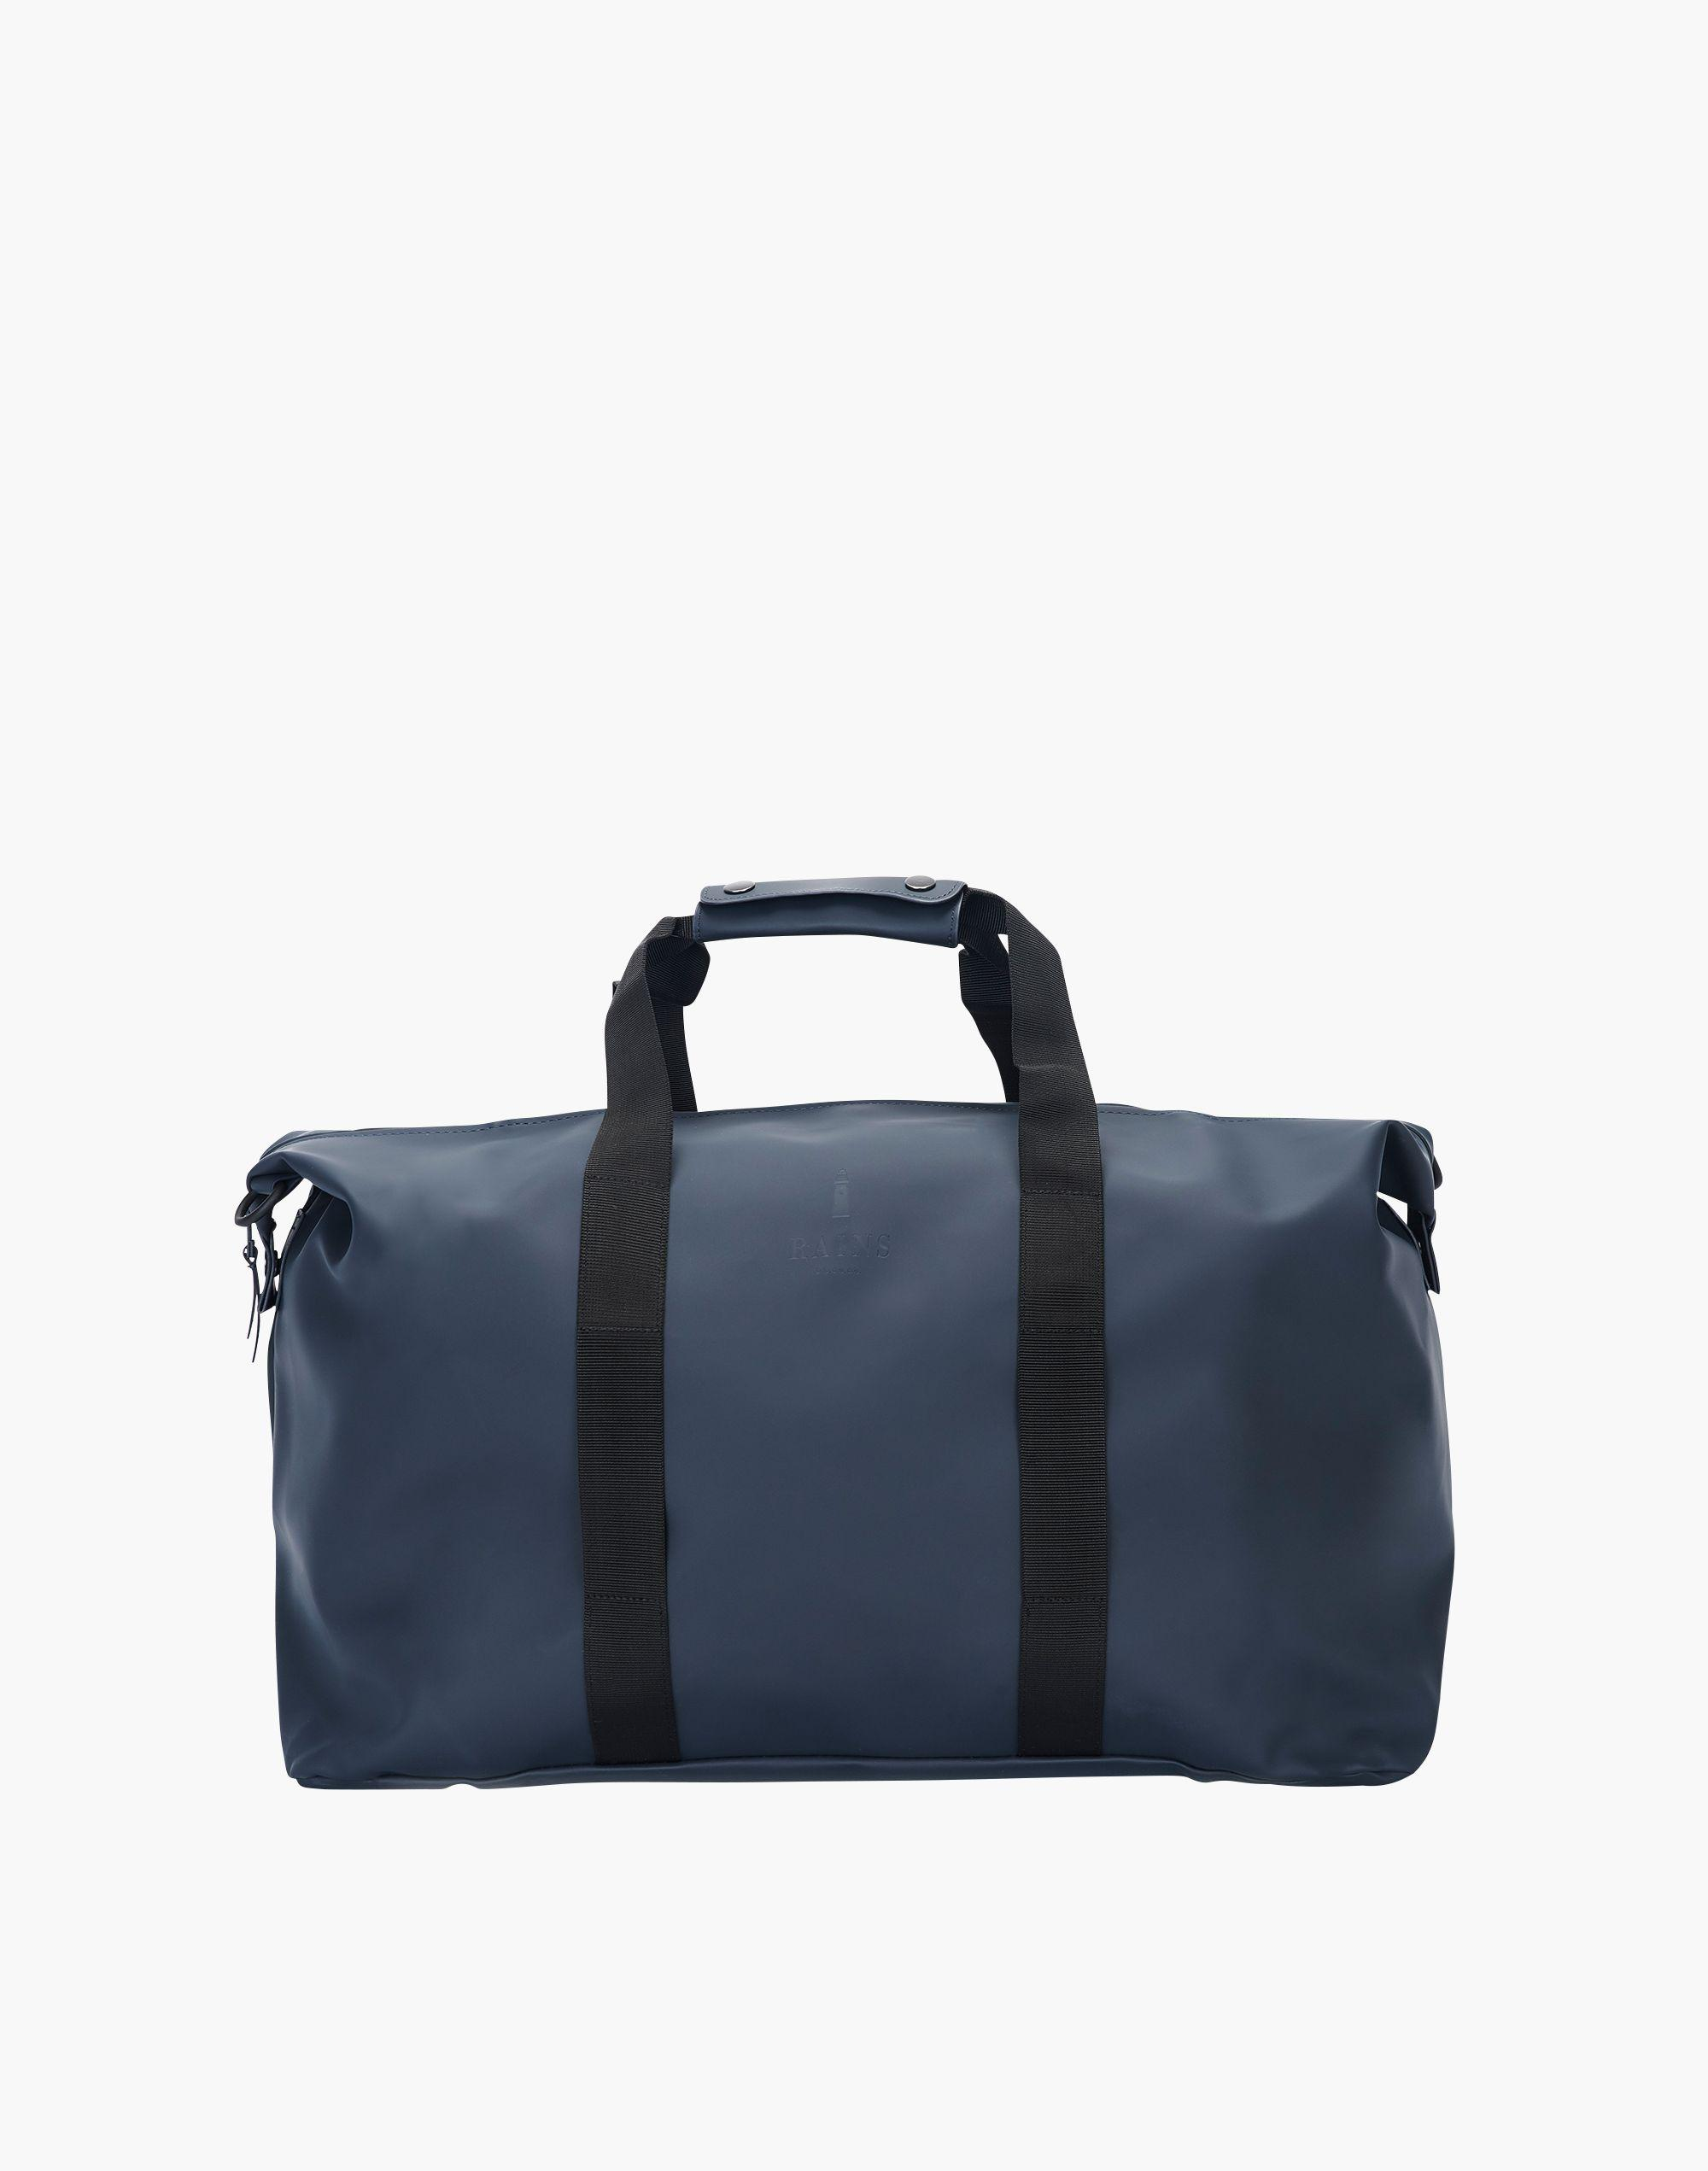 Lyst - Madewell Rains® Weekend Bag in Blue for Men 496381ef960a4